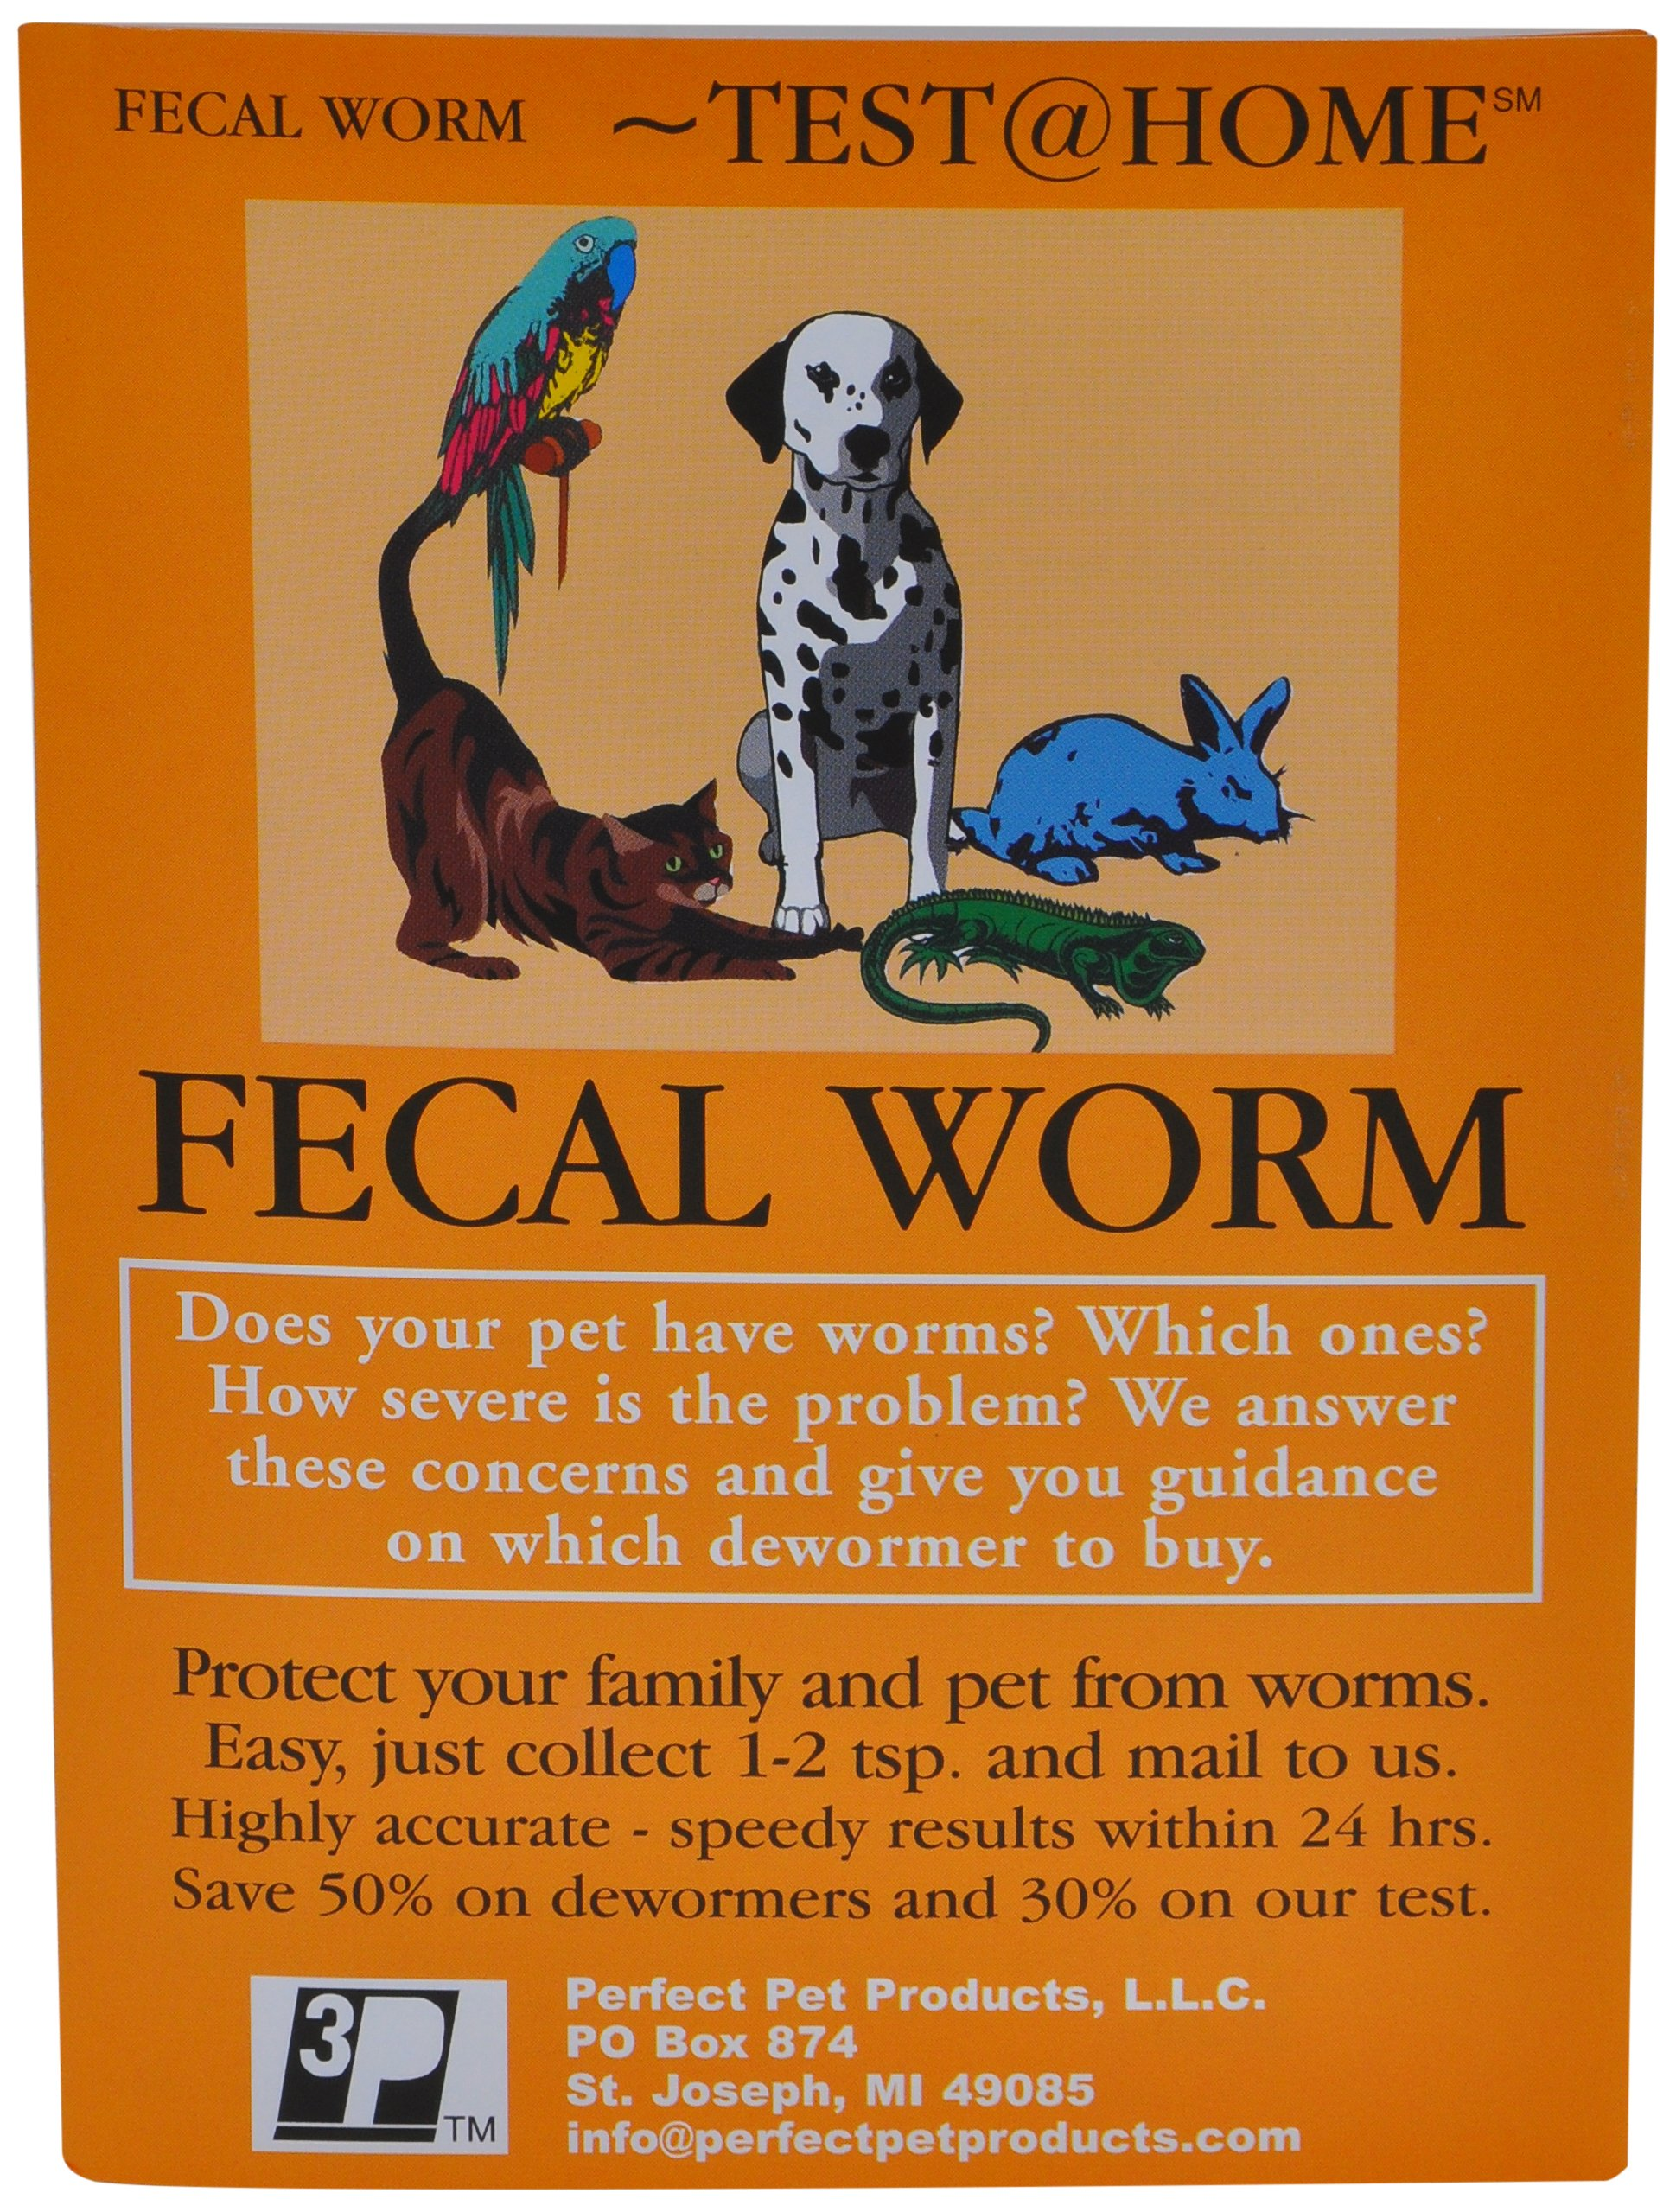 FECAL Worm Test for All Types of Pets(Dogs, Cats, Birds, Reptiles, Rabbits, Lions, Turtles)(Just Collect Sample and Mail to Our Vet Lab) by Unknown